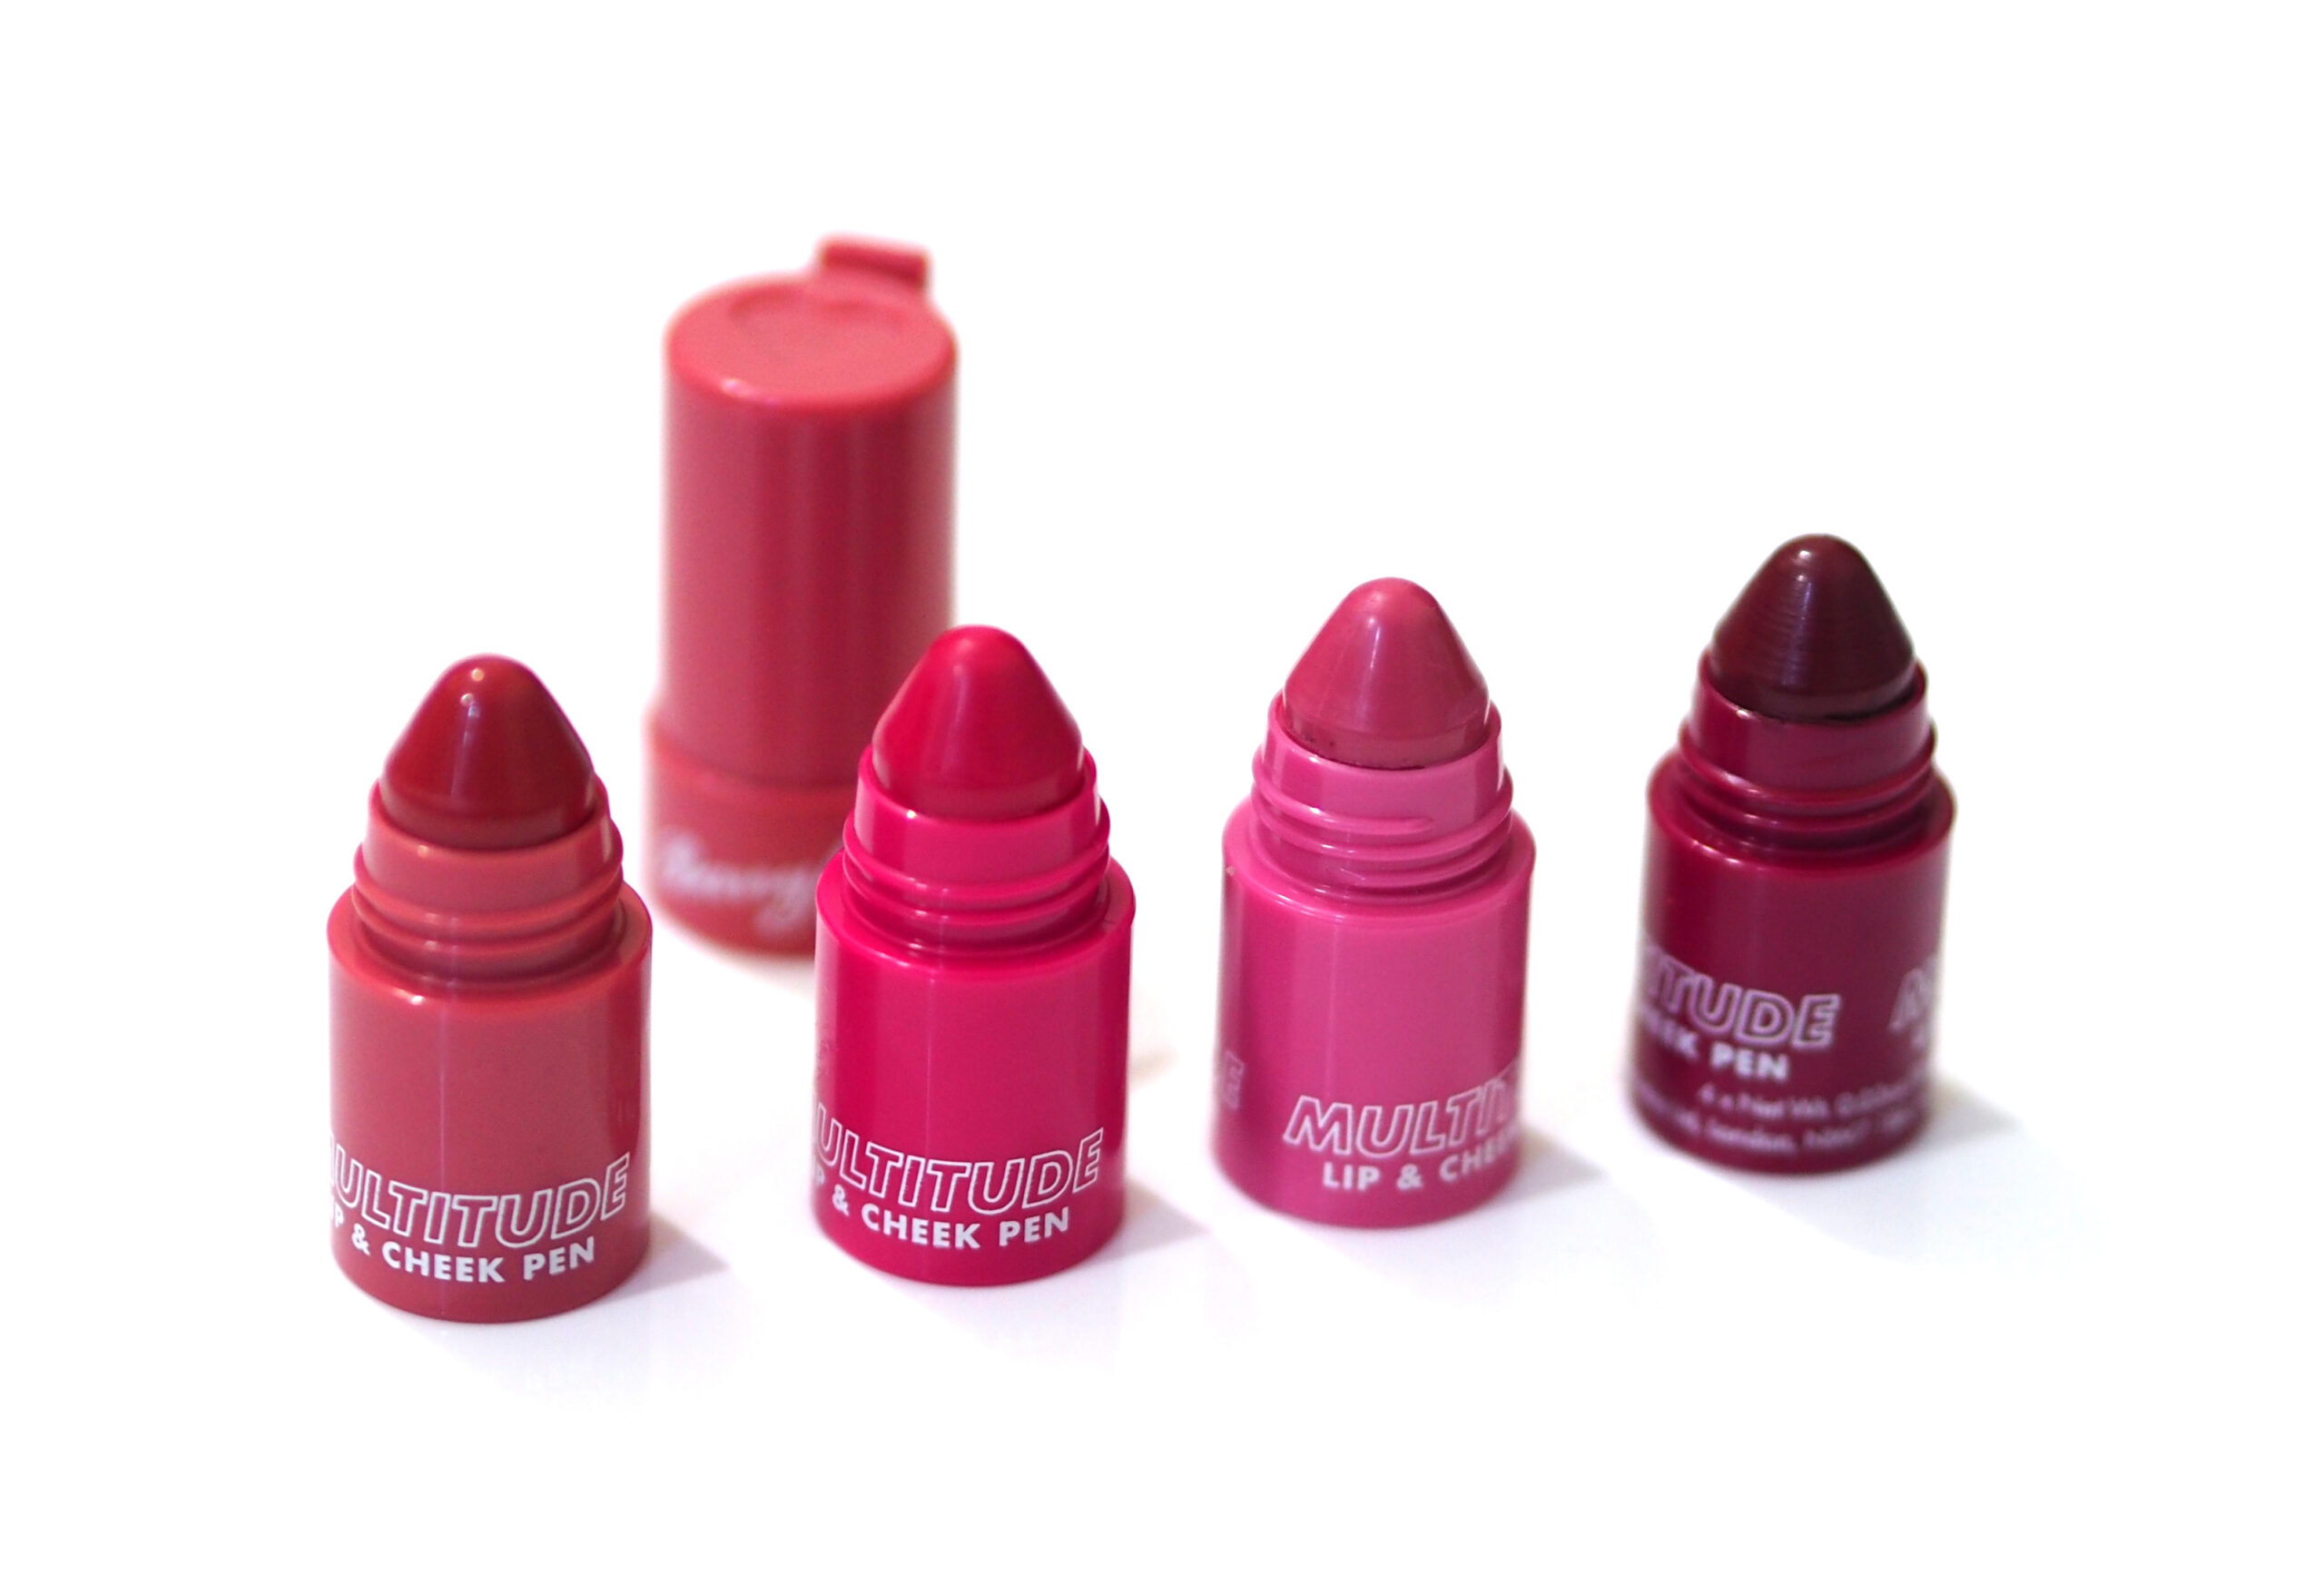 Barry M Multitude Lip & Cheek Pen Review / Swatches